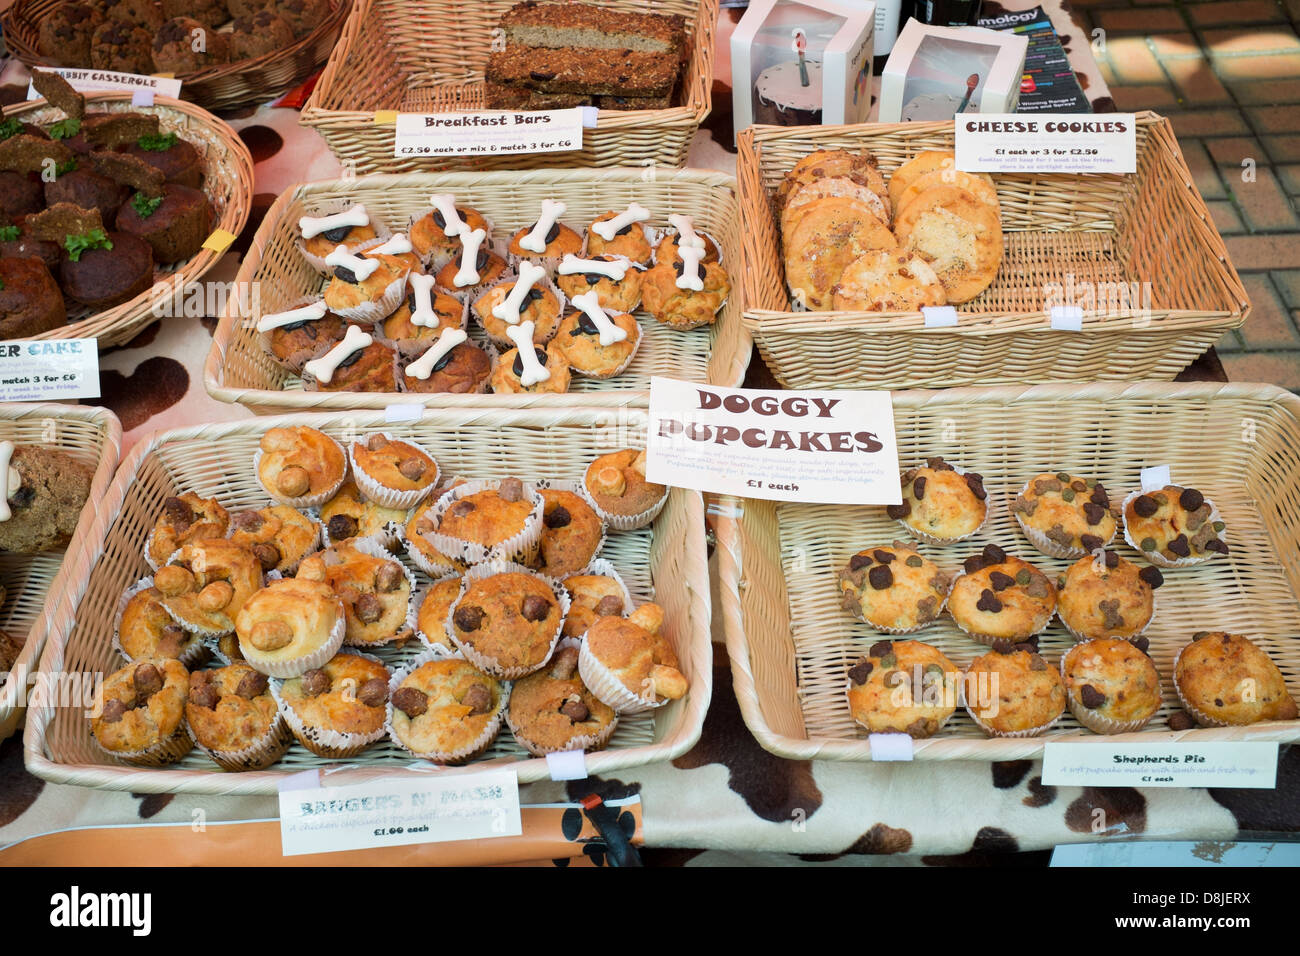 Doggy Pupcakes on sale at Stroud Farmers Market - Stock Image